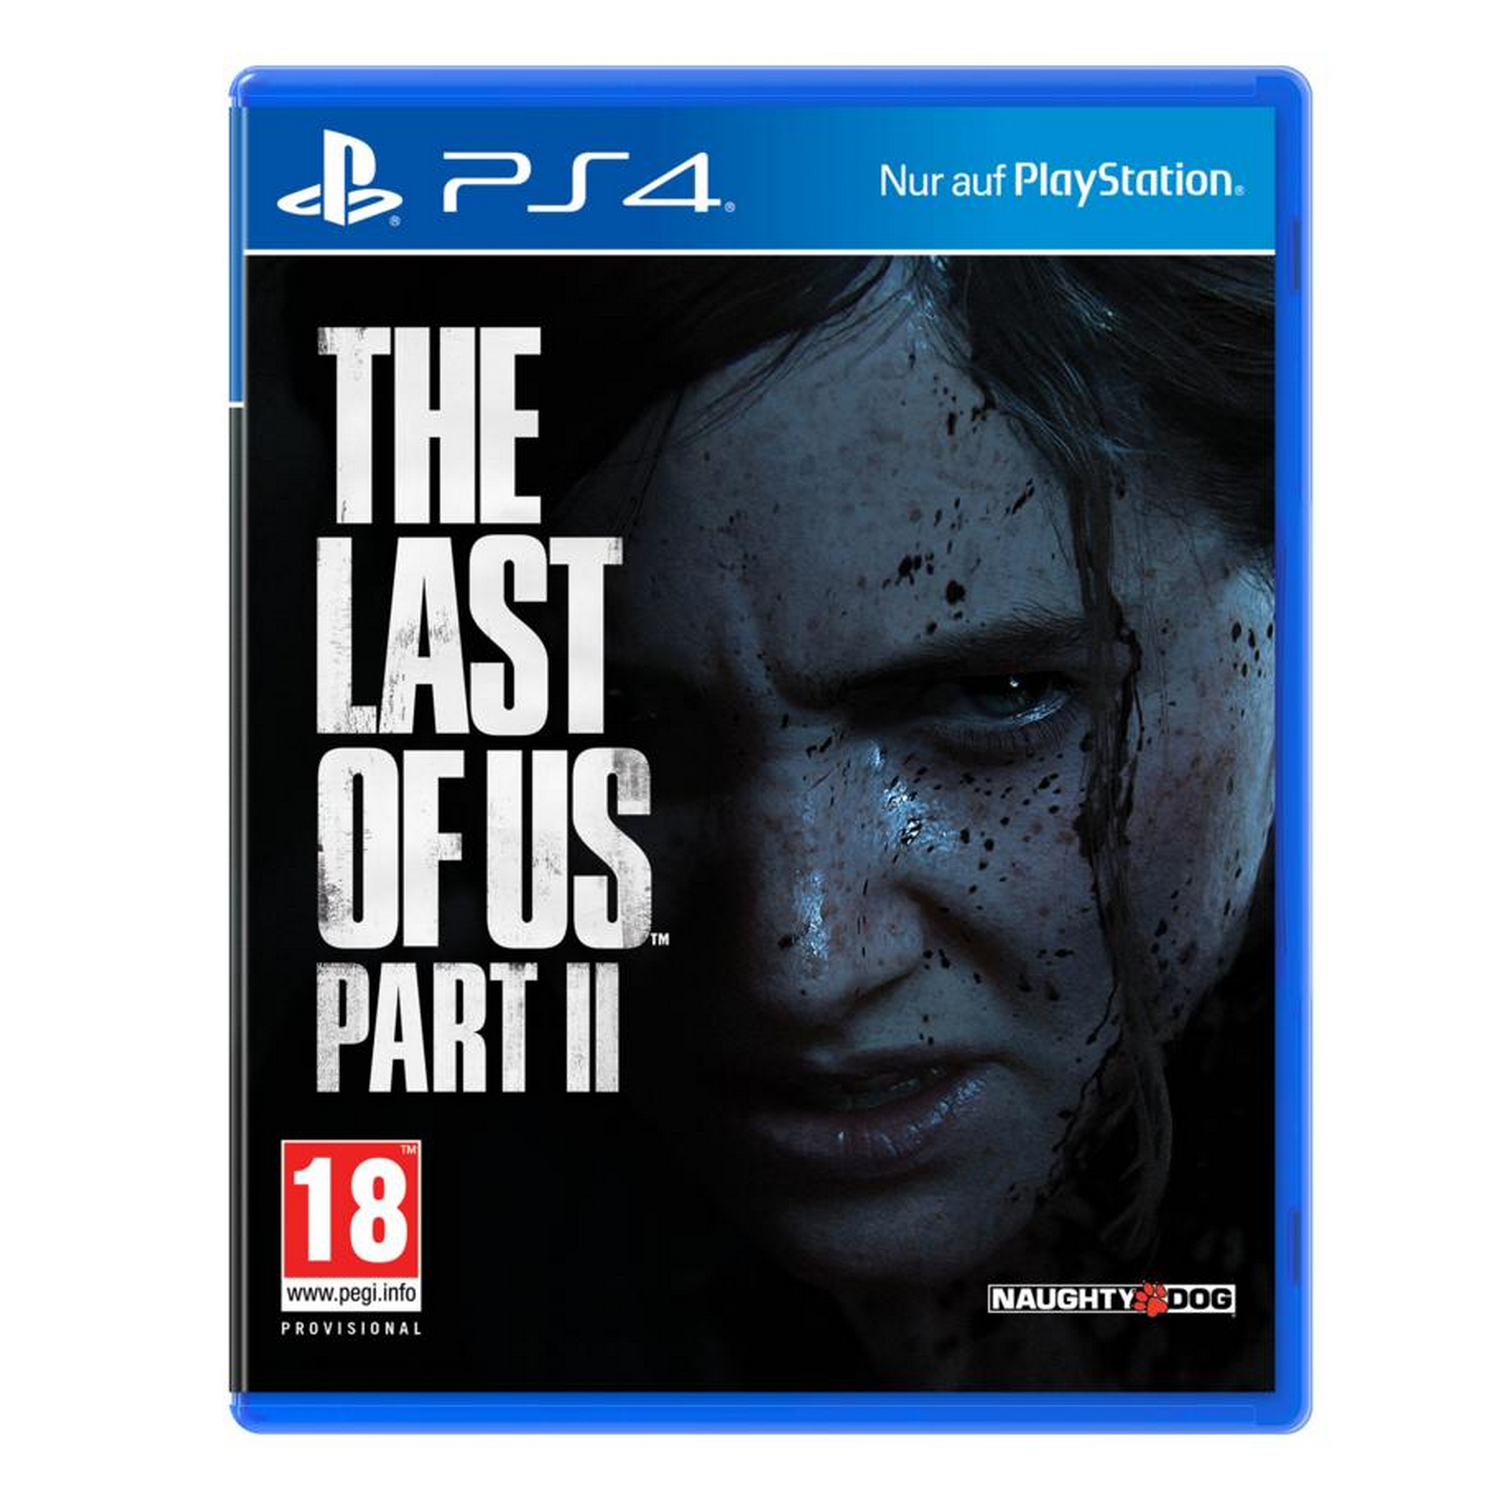 SONY PLAYSTATION The Last of Us Part II PlayStation 4 9330905 PEGI 18